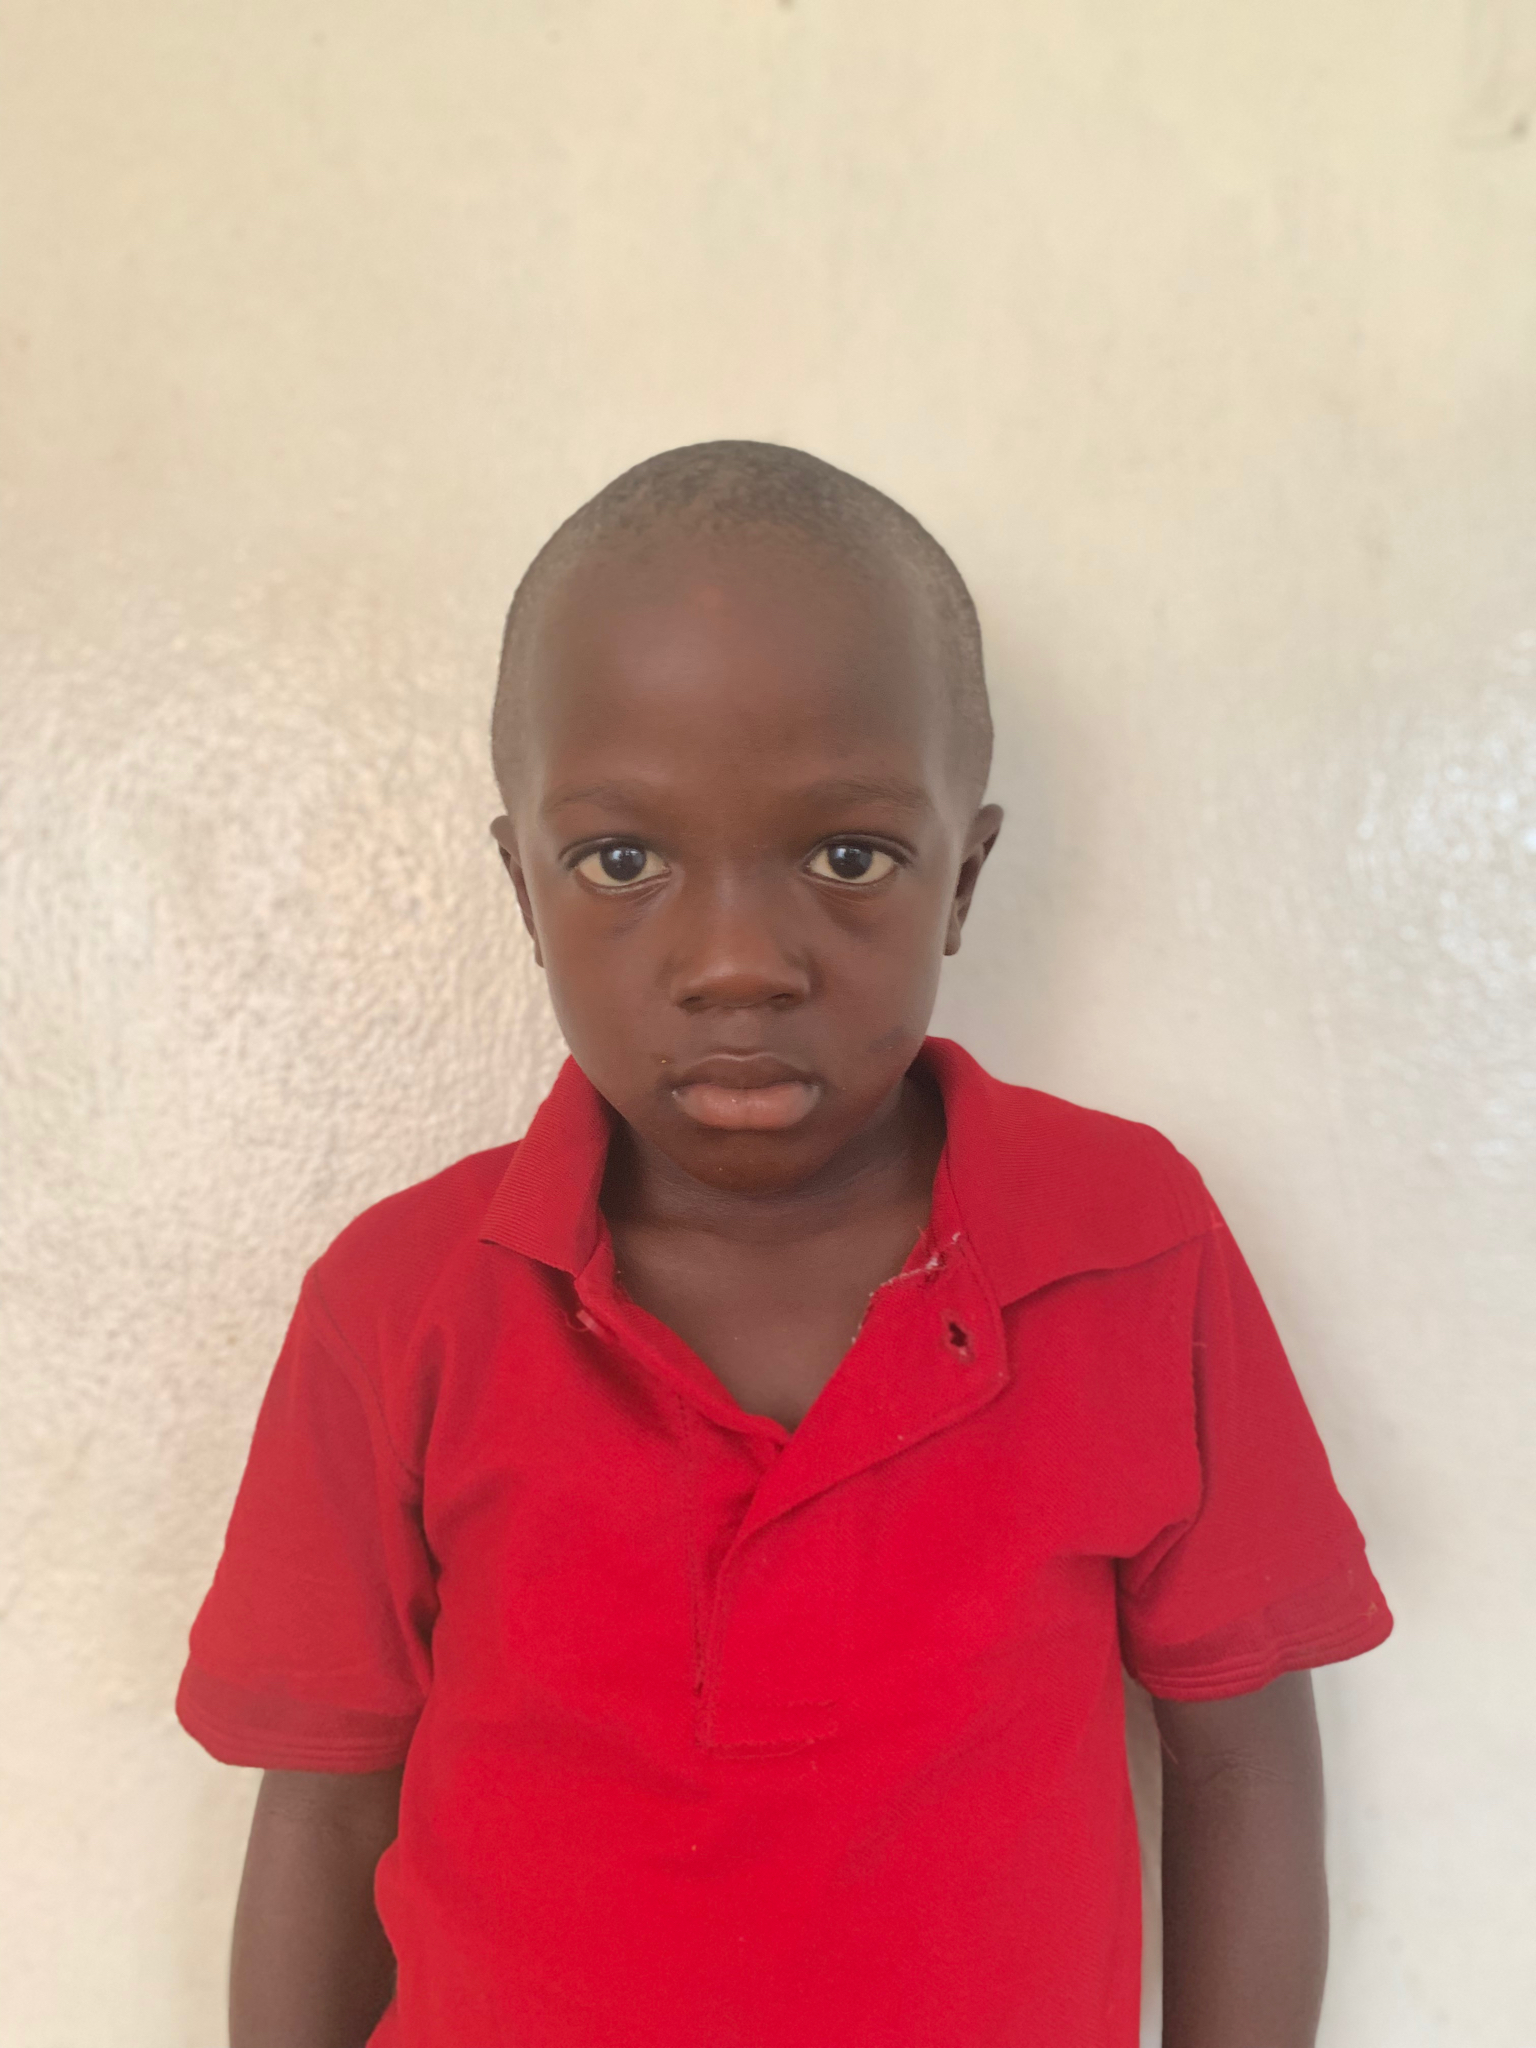 Hello, my name is Leelai Jones. - Leelai is a 4-year-old boy.Leelai lives with his his parents, four brothers, and two sisters; and loves cats, football, and the color red.